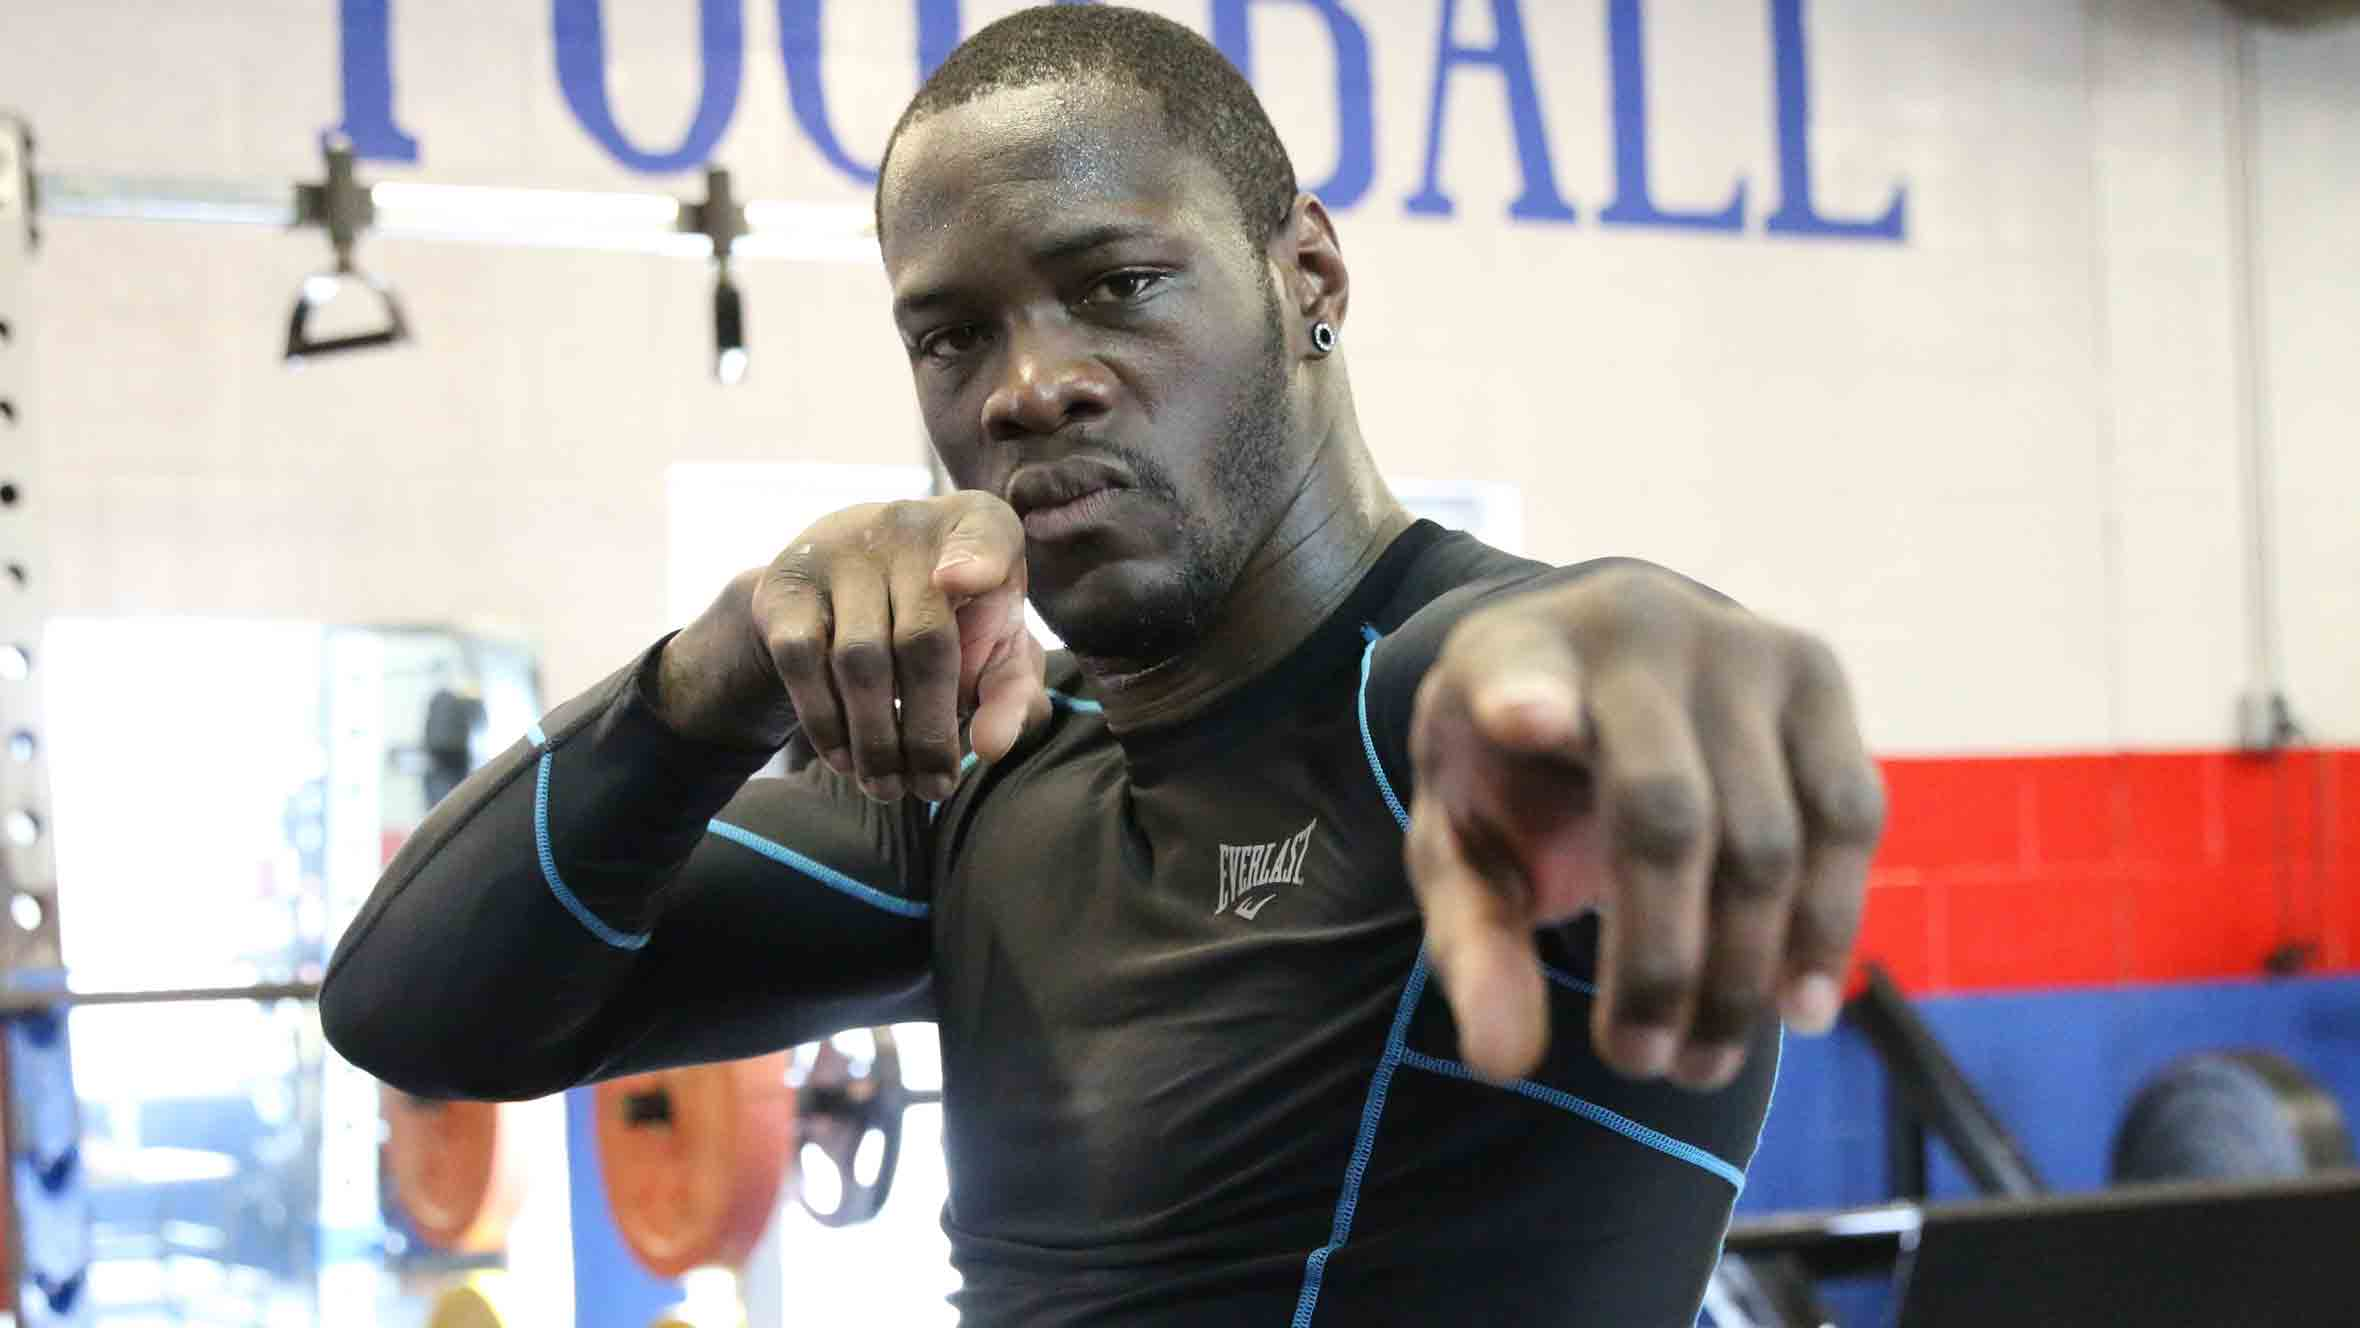 Deontay Wilder Ready To Travel To Russia To Defend Title